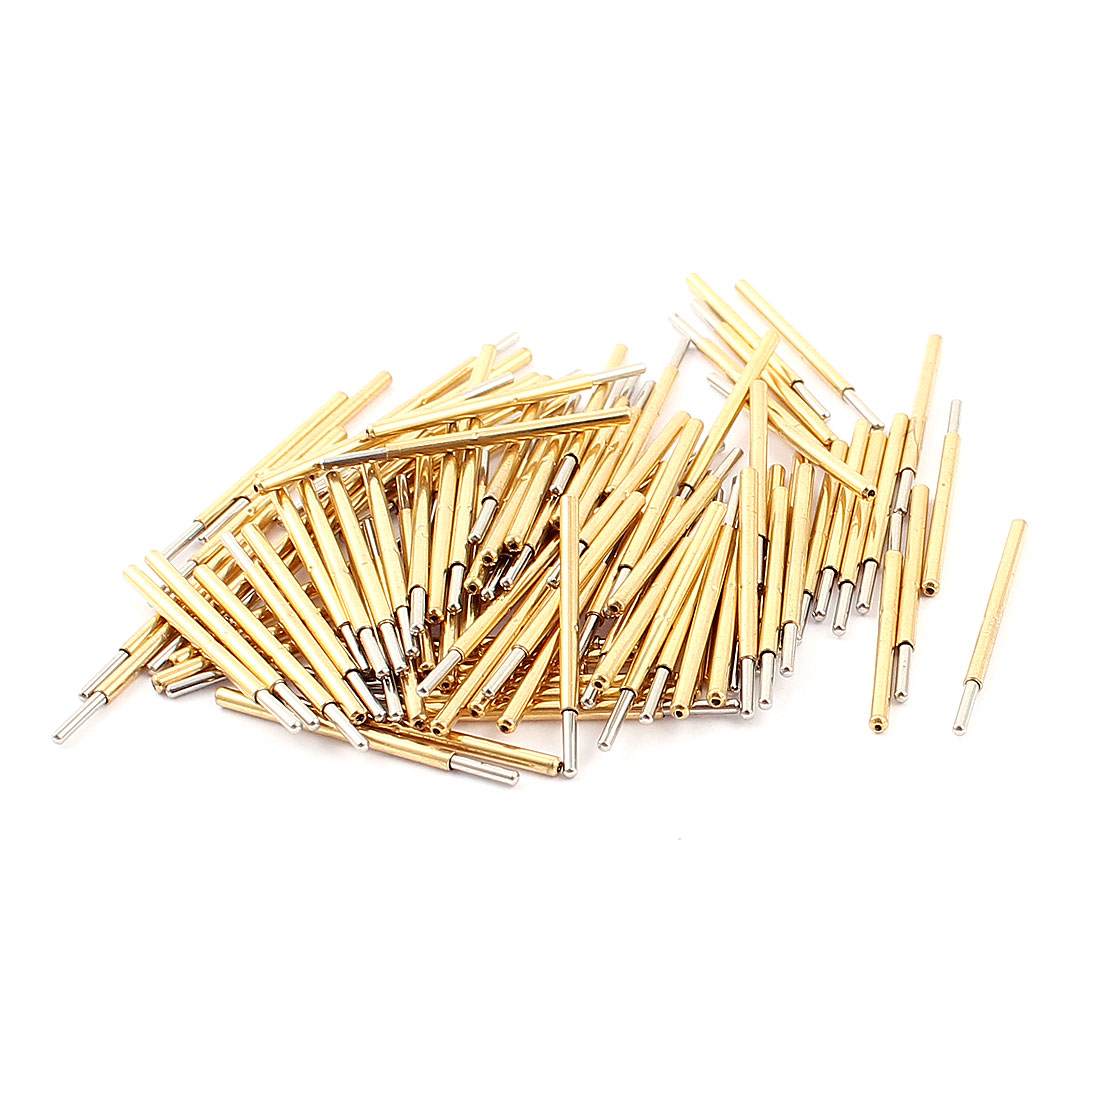 100Pcs P160D 1mm Dia Spherical Tip Spring Loaded Test Contact Testing Probes Pin 23mm